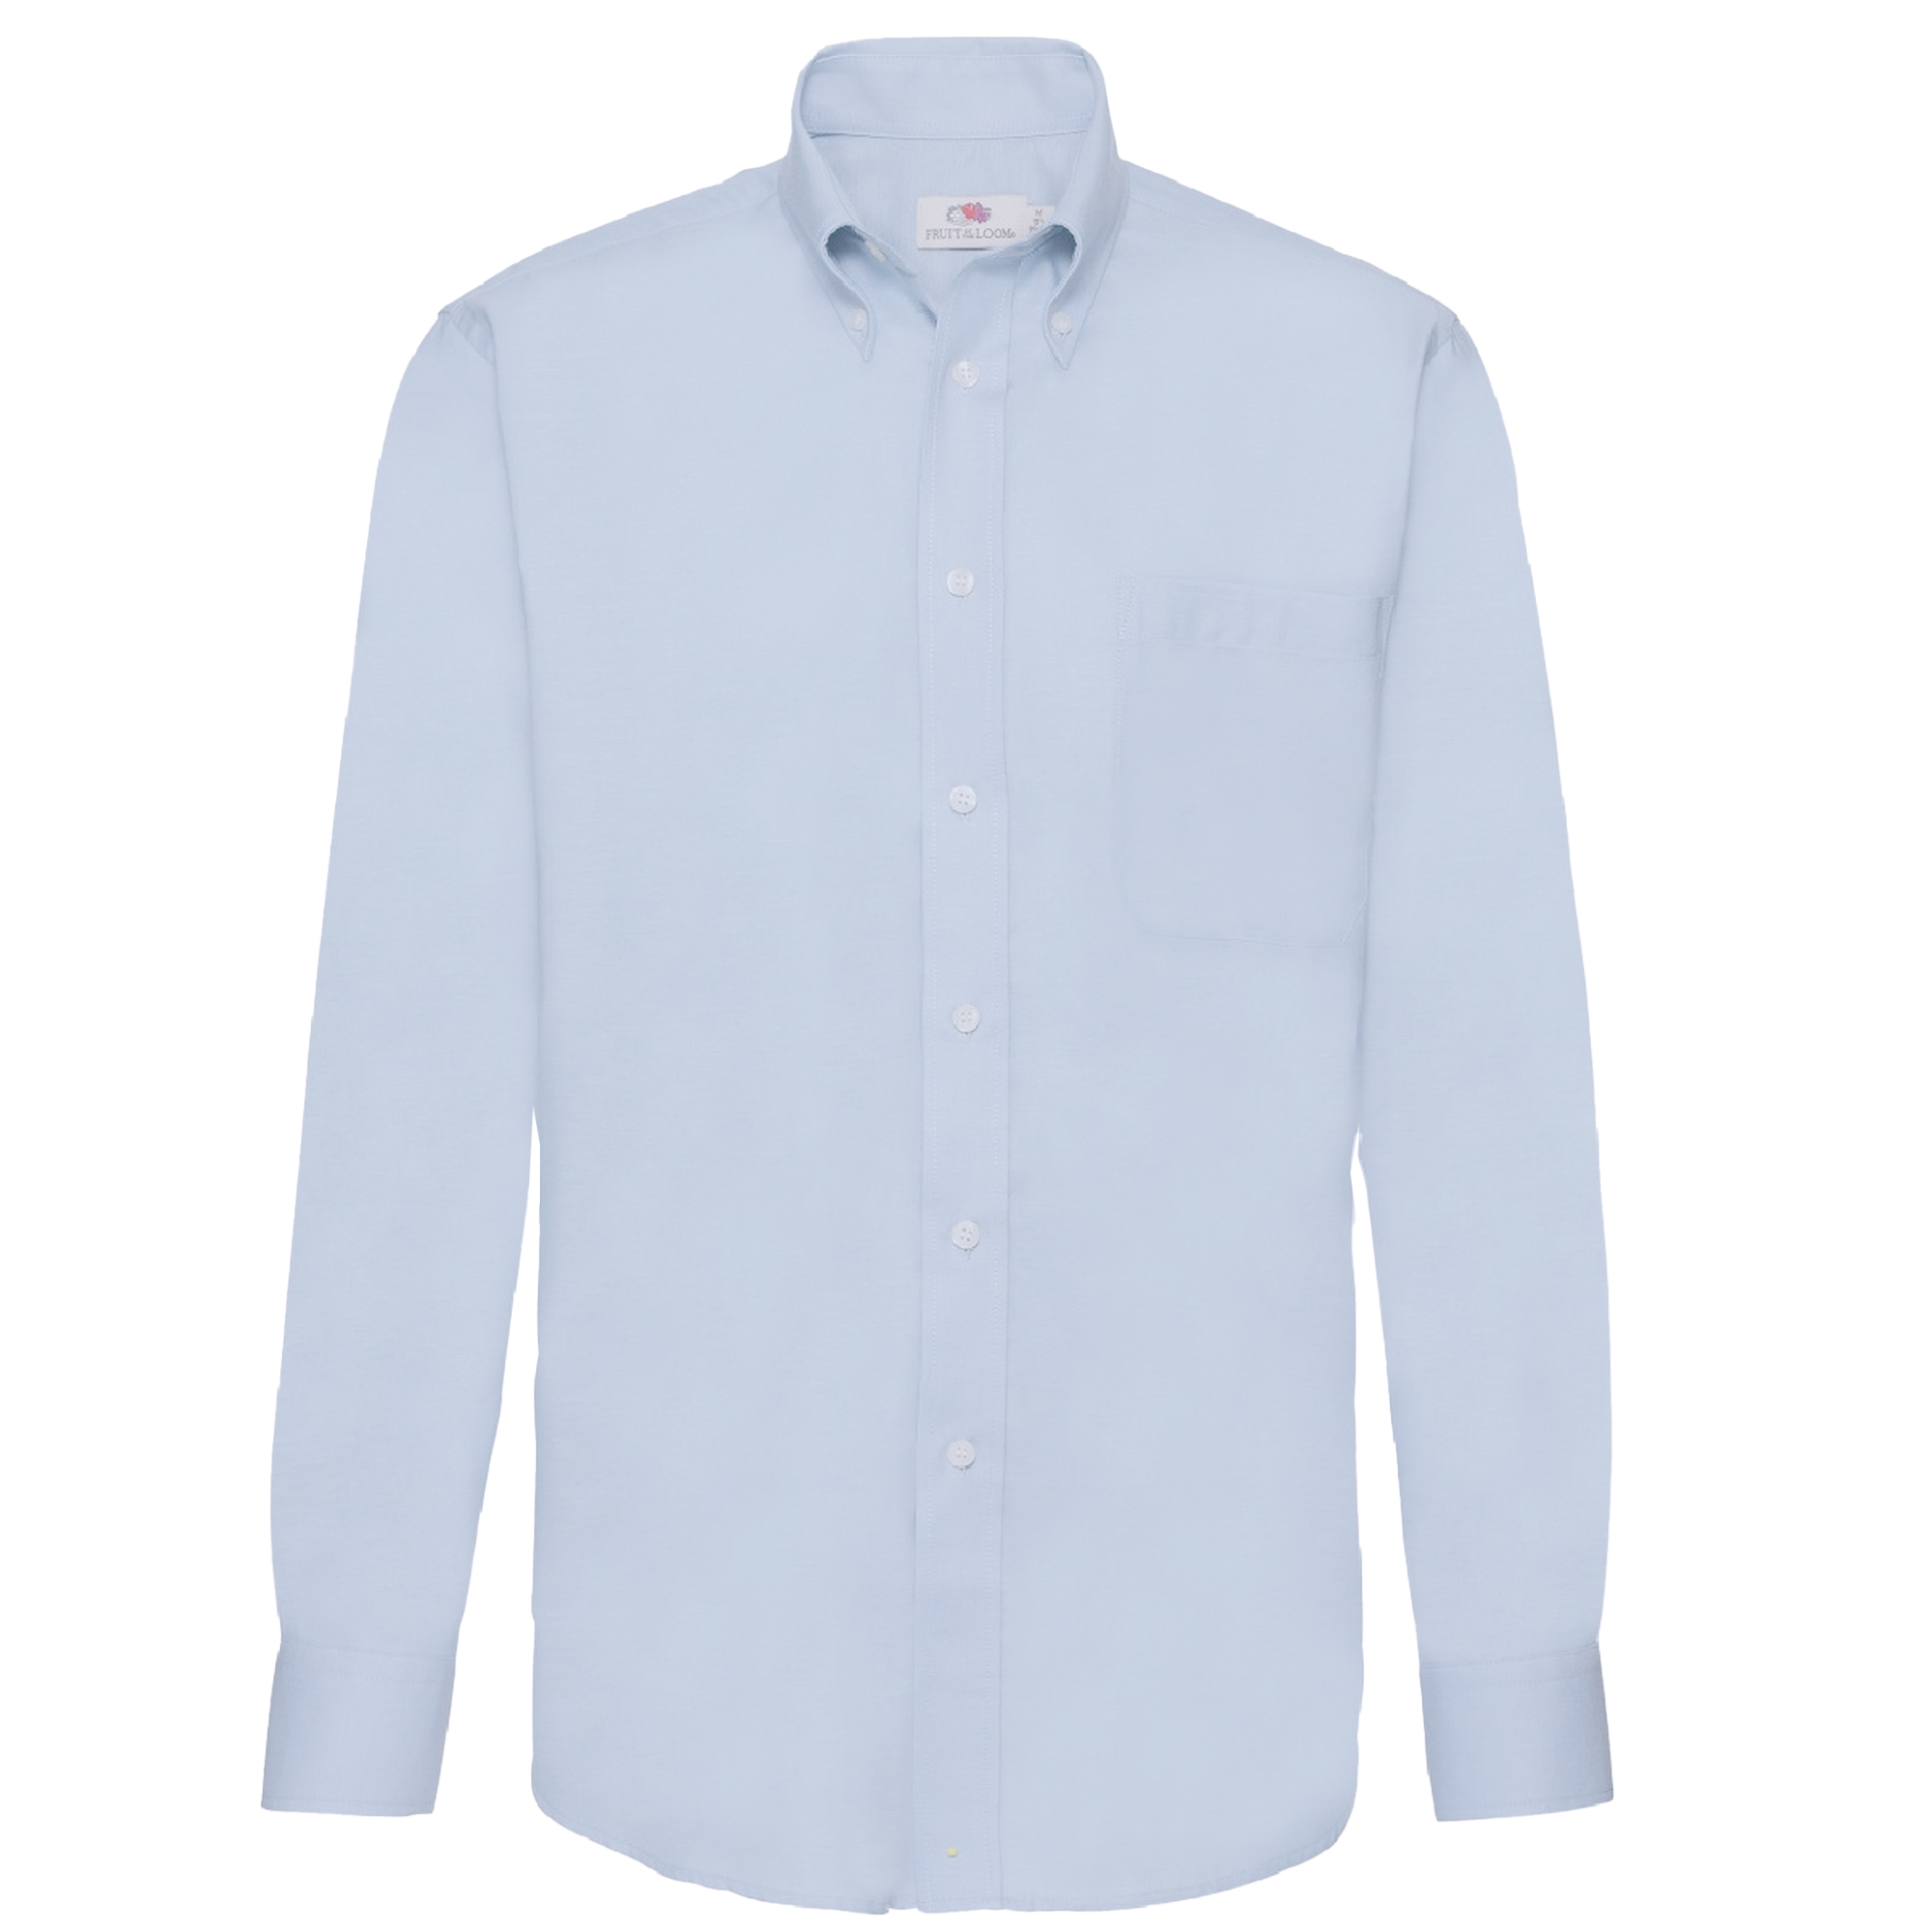 Fruit Of The Loom Mens Long Sleeve Oxford Shirt (L) (Oxford Blue)